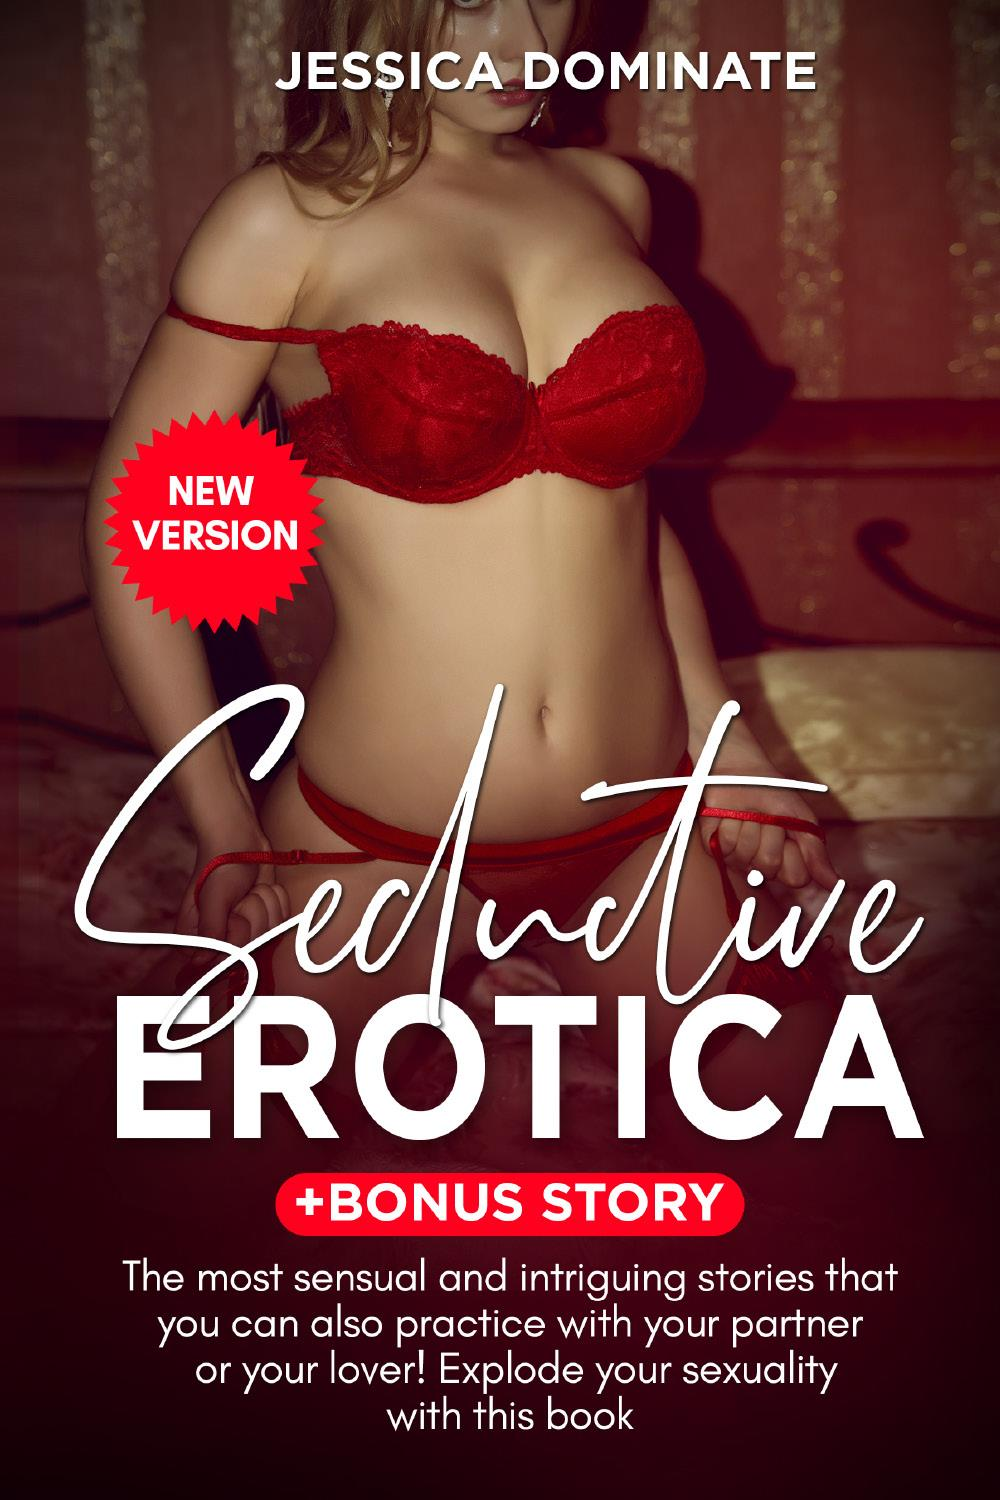 Seductive Erotica + Bonus Story. The most sensual and intriguing stories that you can also practice with your partner or your lover! Explode your sexuality with this book (New Version)